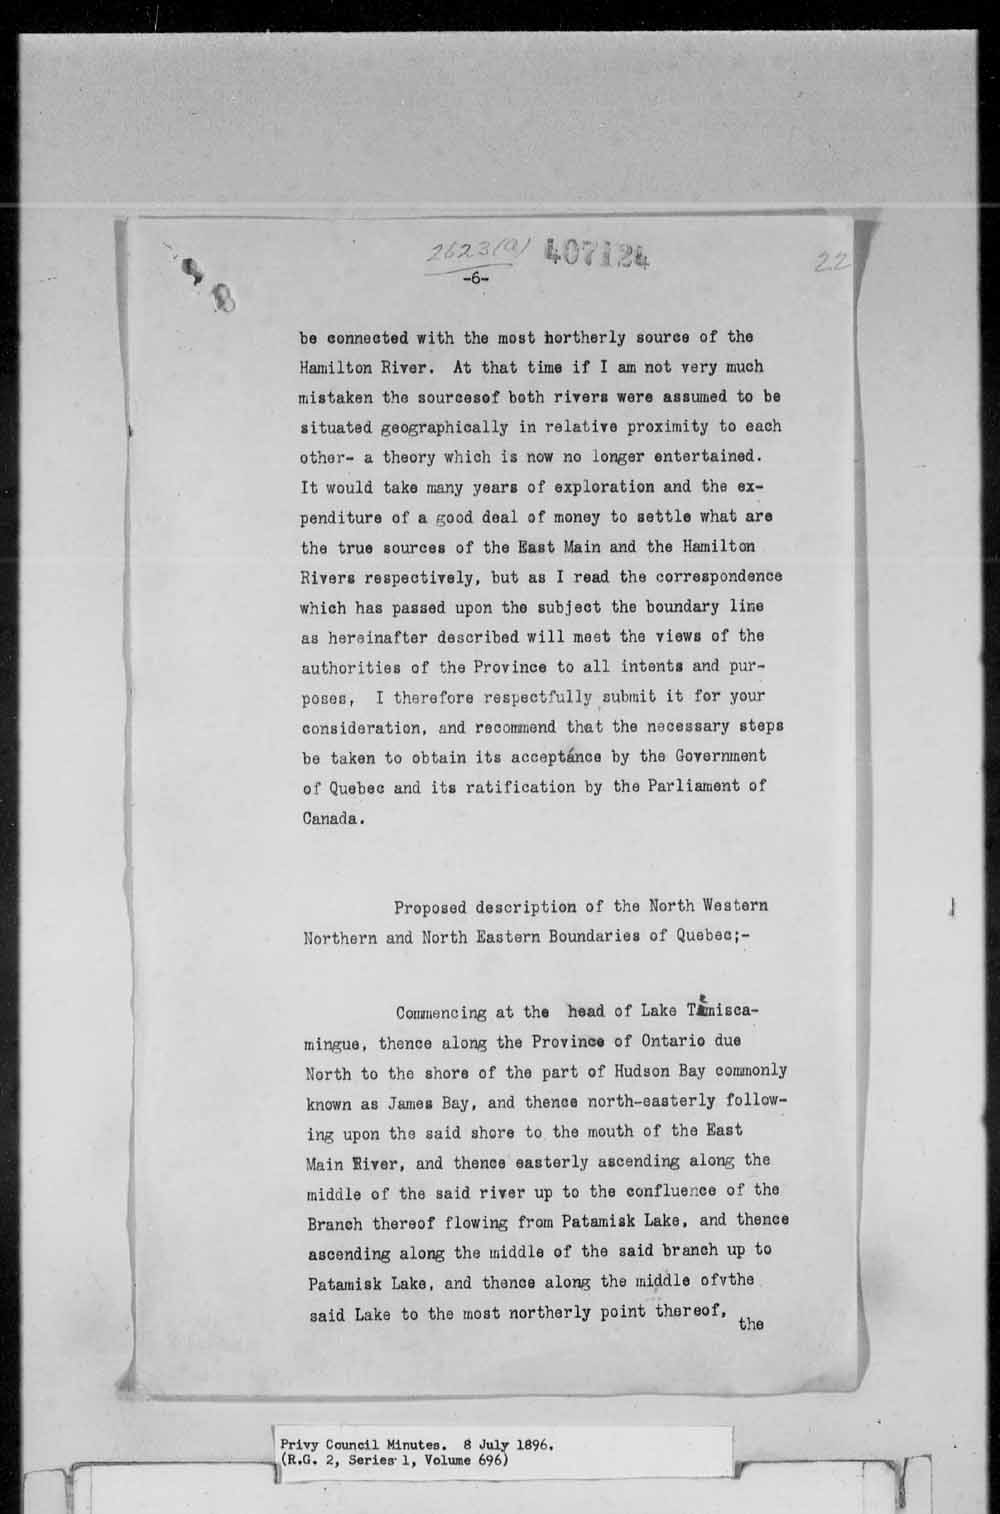 Digitized page of Orders in Council for Image No.: e003161798